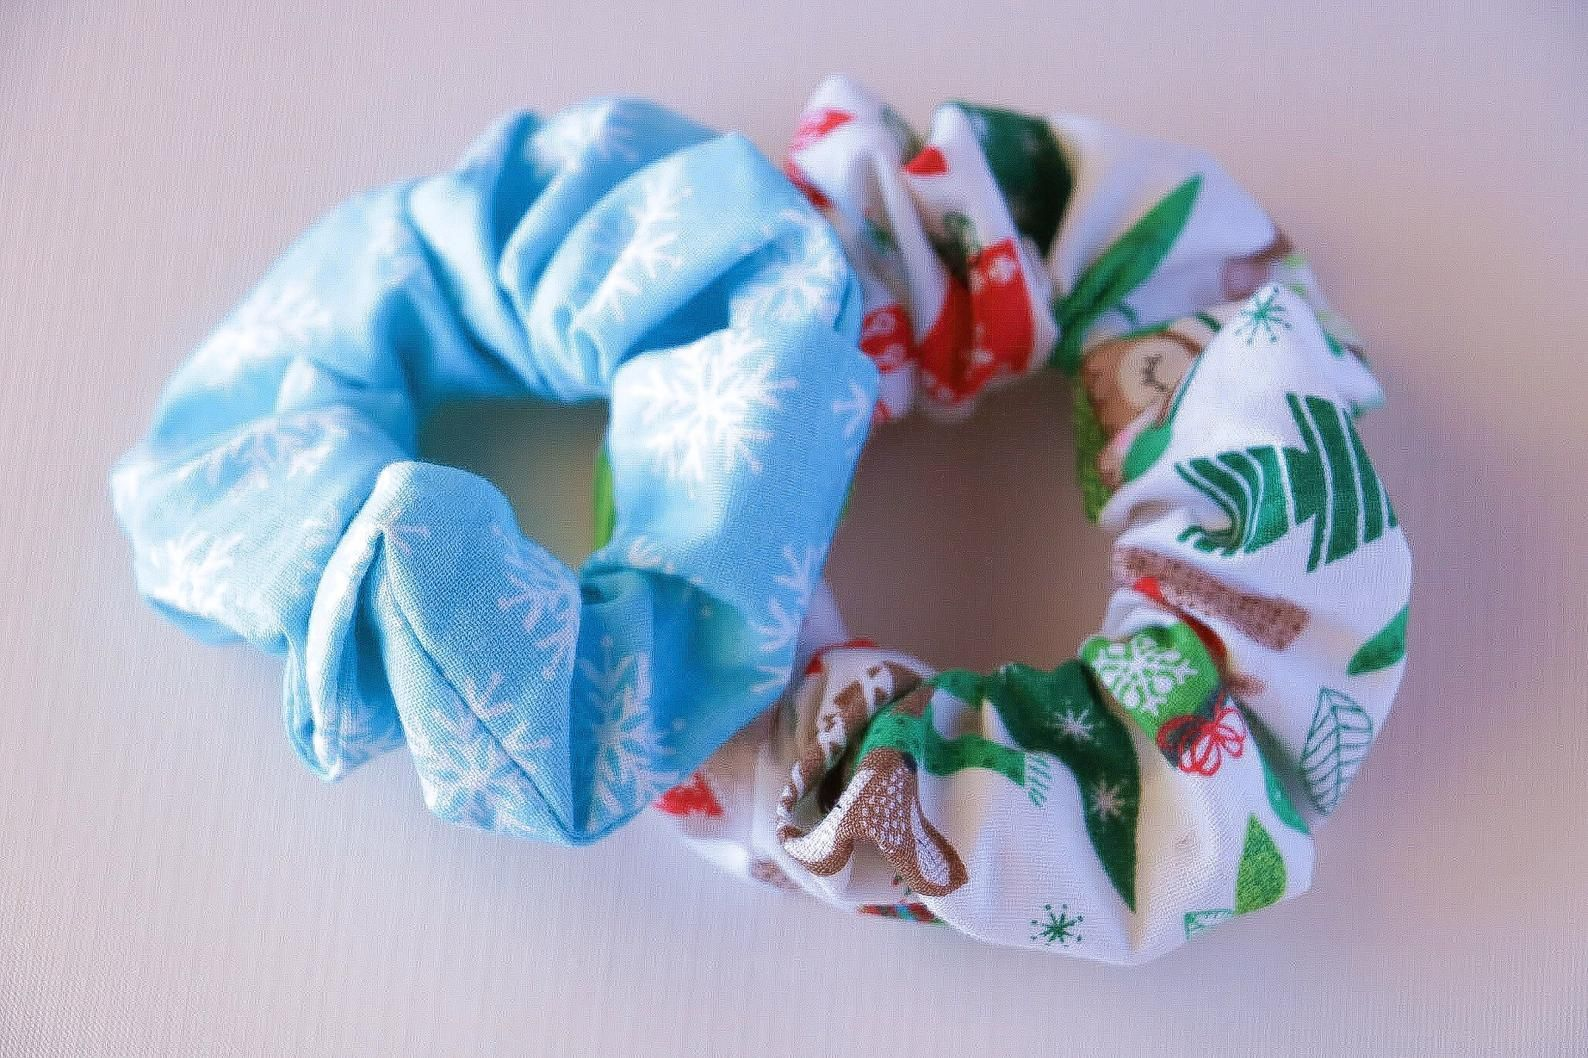 2-Pack Snowflake Christmas Scrunchies - #2Pack #Christmas #Scrunchies #Snowflake -    This 2-pack is super duper cute for anyone who loves a cute hair scrunchie, and definitely an adorable Christmas accessory too. Handmade by me. Each scrunchie has a limited stock, all made from 100% cotton.  FIND ME HERE; Instagram; www.instagram.com… Facebook; www.facebook.com/… Pinterest;  2-Pack Snowflake Christmas Scrunchies  CCourtneyMandala courtneymandala Scrunchies! This 2-pack is super duper cute for